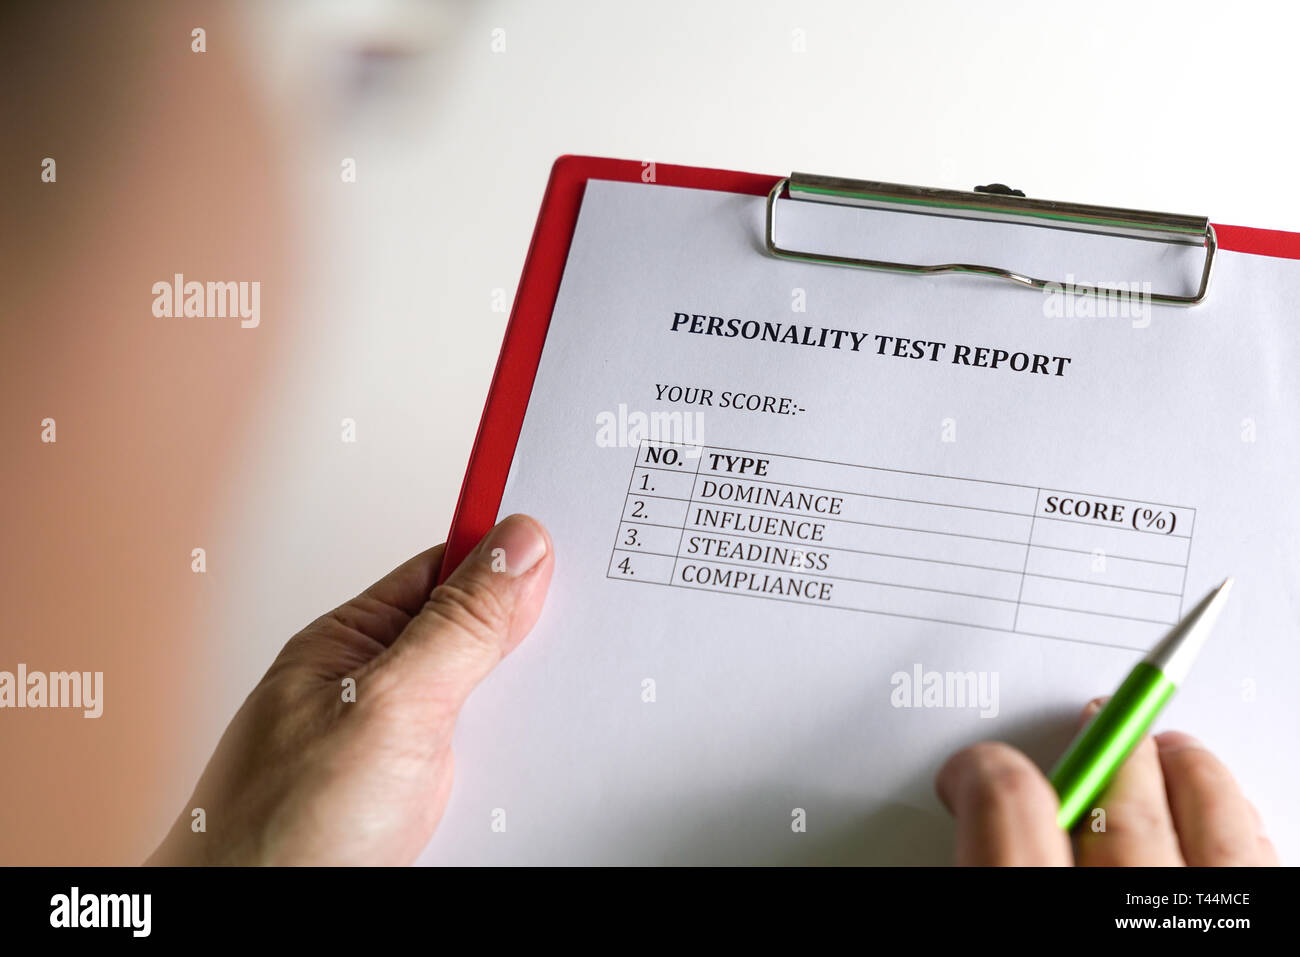 Personality test or assessment form as part of job interview